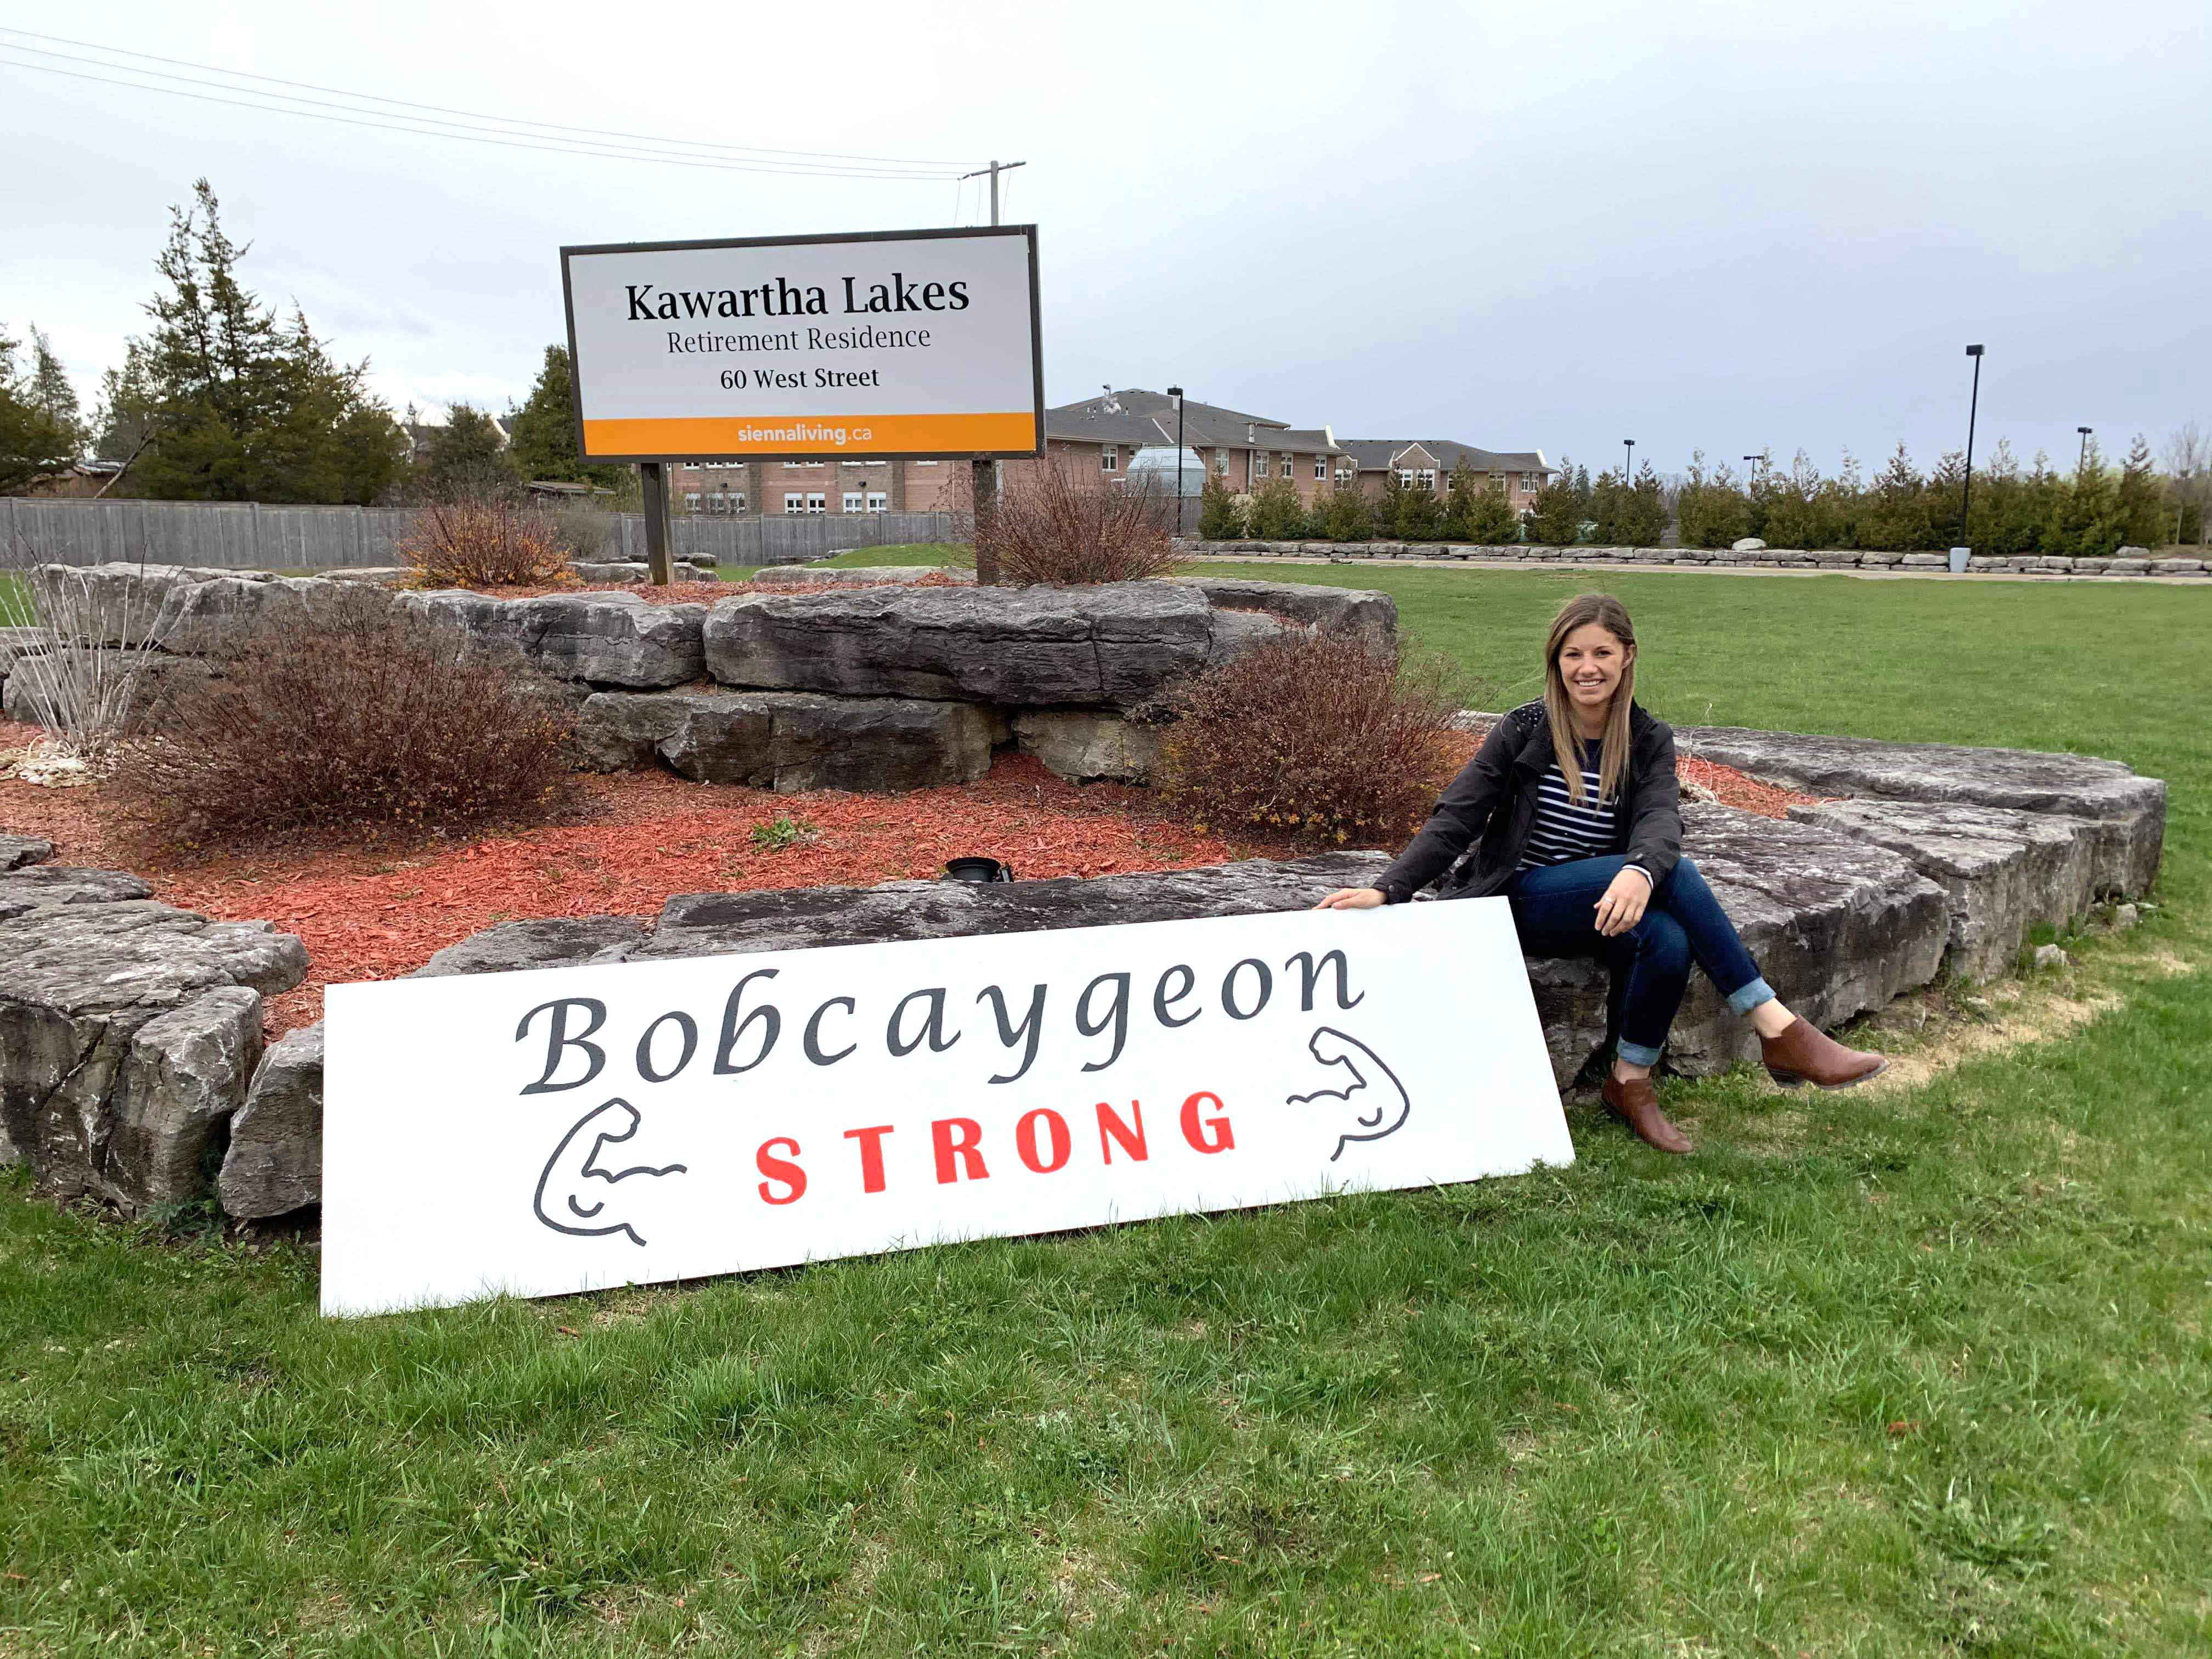 "A team member posing with a sign that says ""Bobcaygeon Strong""."